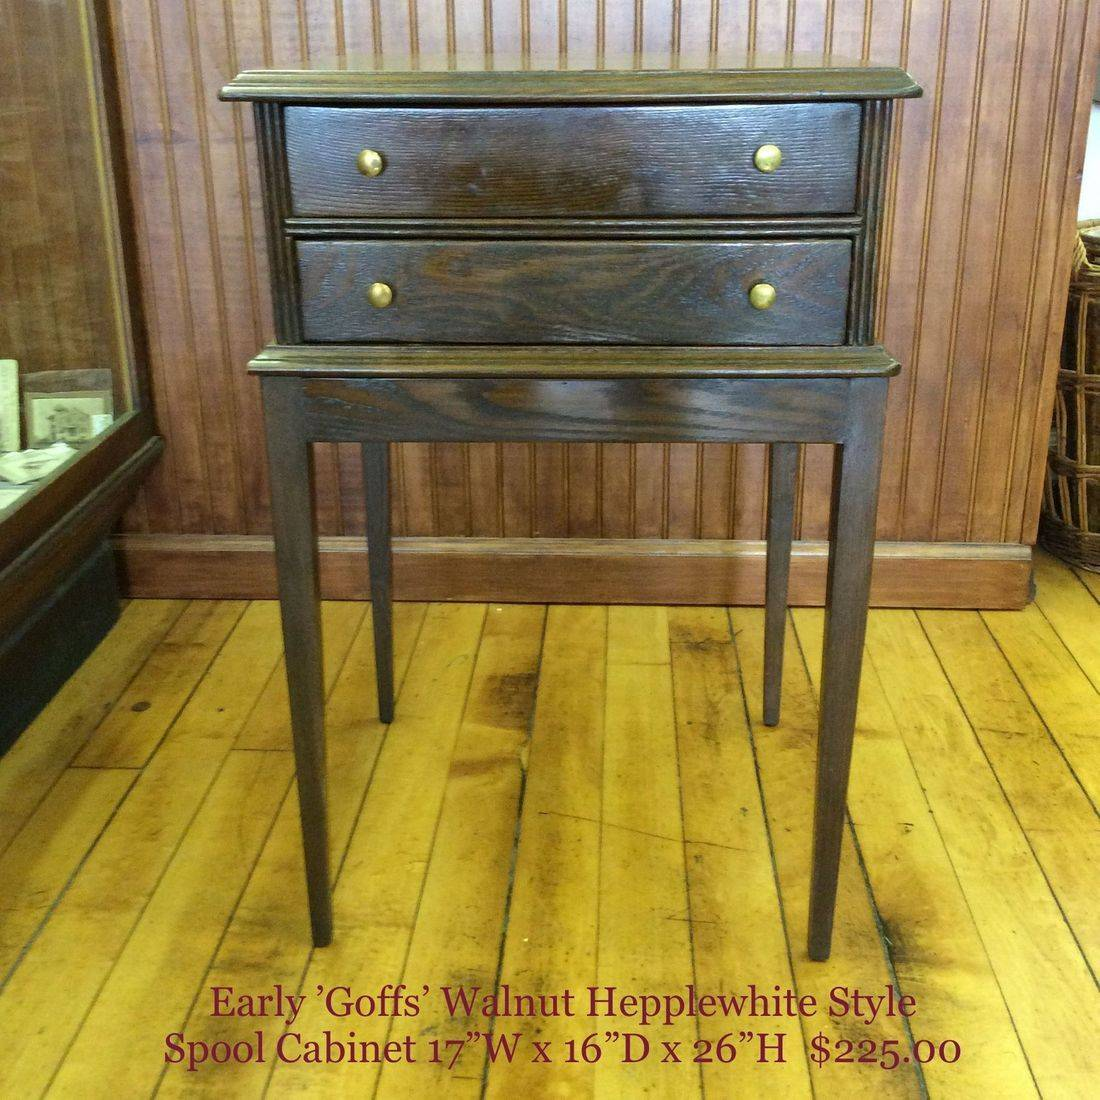 "Early 'Goff's' Walnut 2-Drawer Pembrooke/Hepplewhite Style Spool Cabinet w/Factory Color Stacking Instructions Inside First Drawer  17-1/4""W x 15-3/4""D x 26""H.  $225.00"